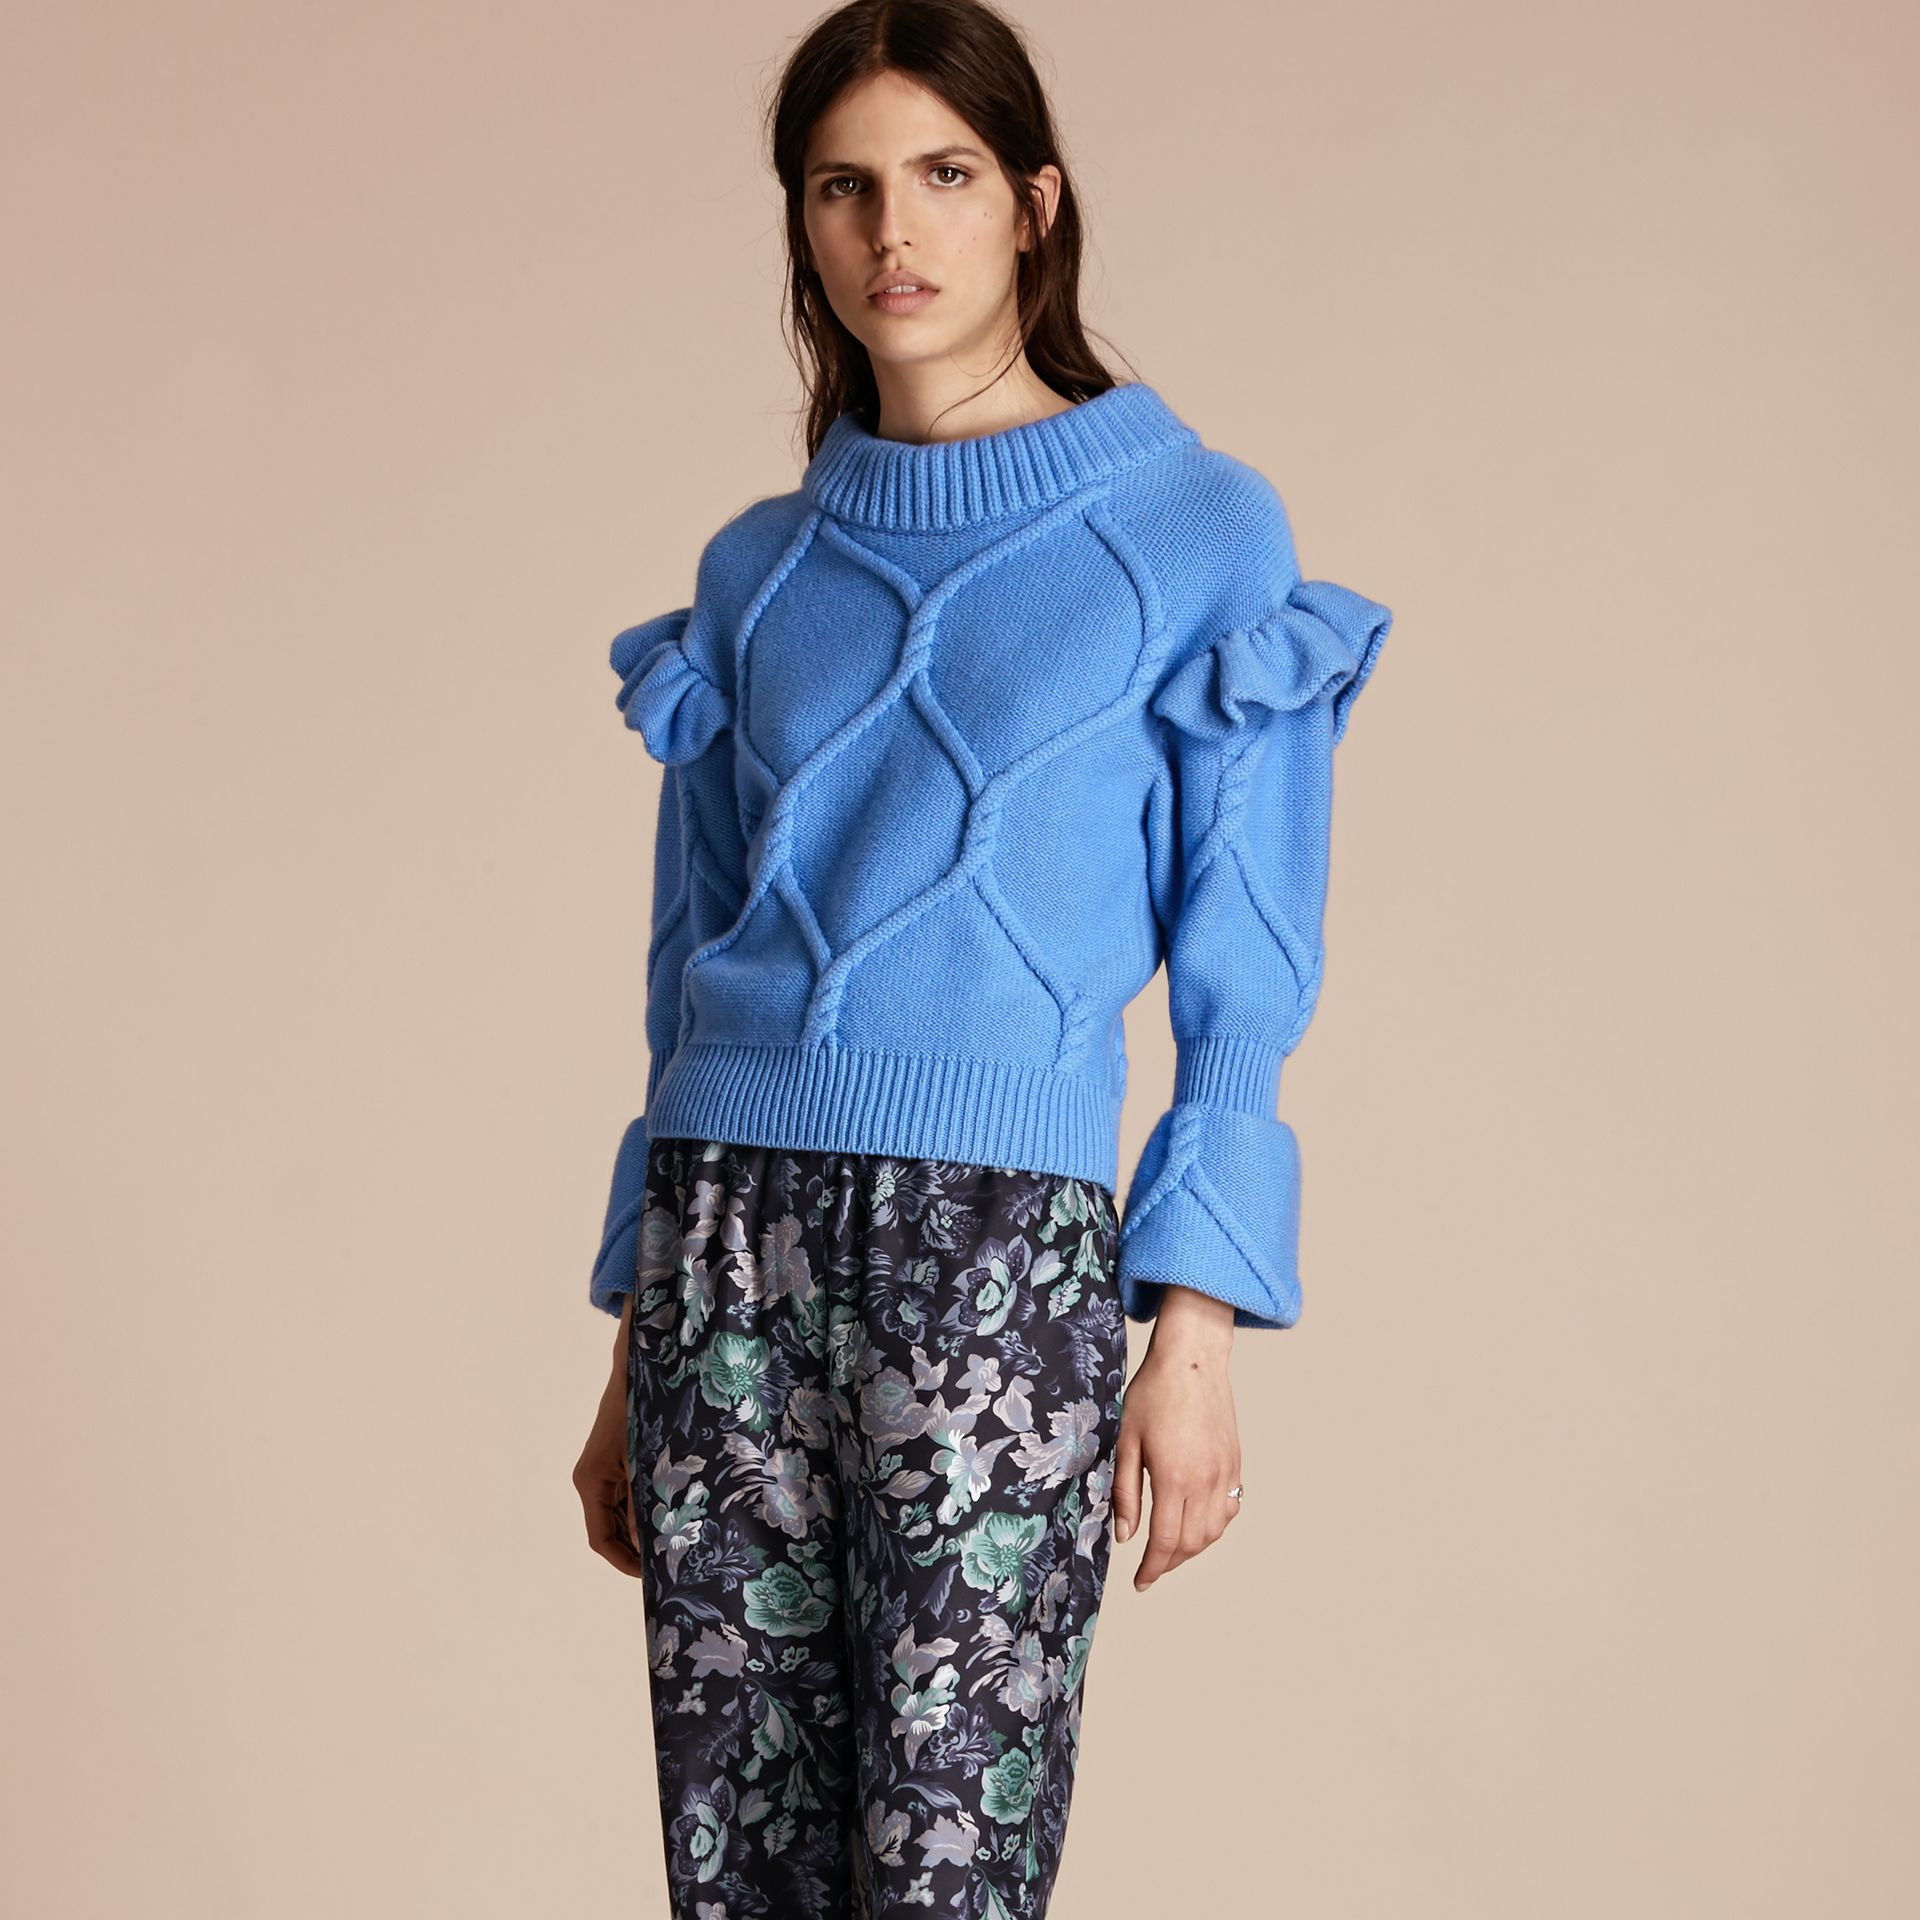 Hydrangia blue Cable Knit Wool Cashmere Sweater with Ruffle Bell Sleeves Hydrangia Blue - gallery image 6